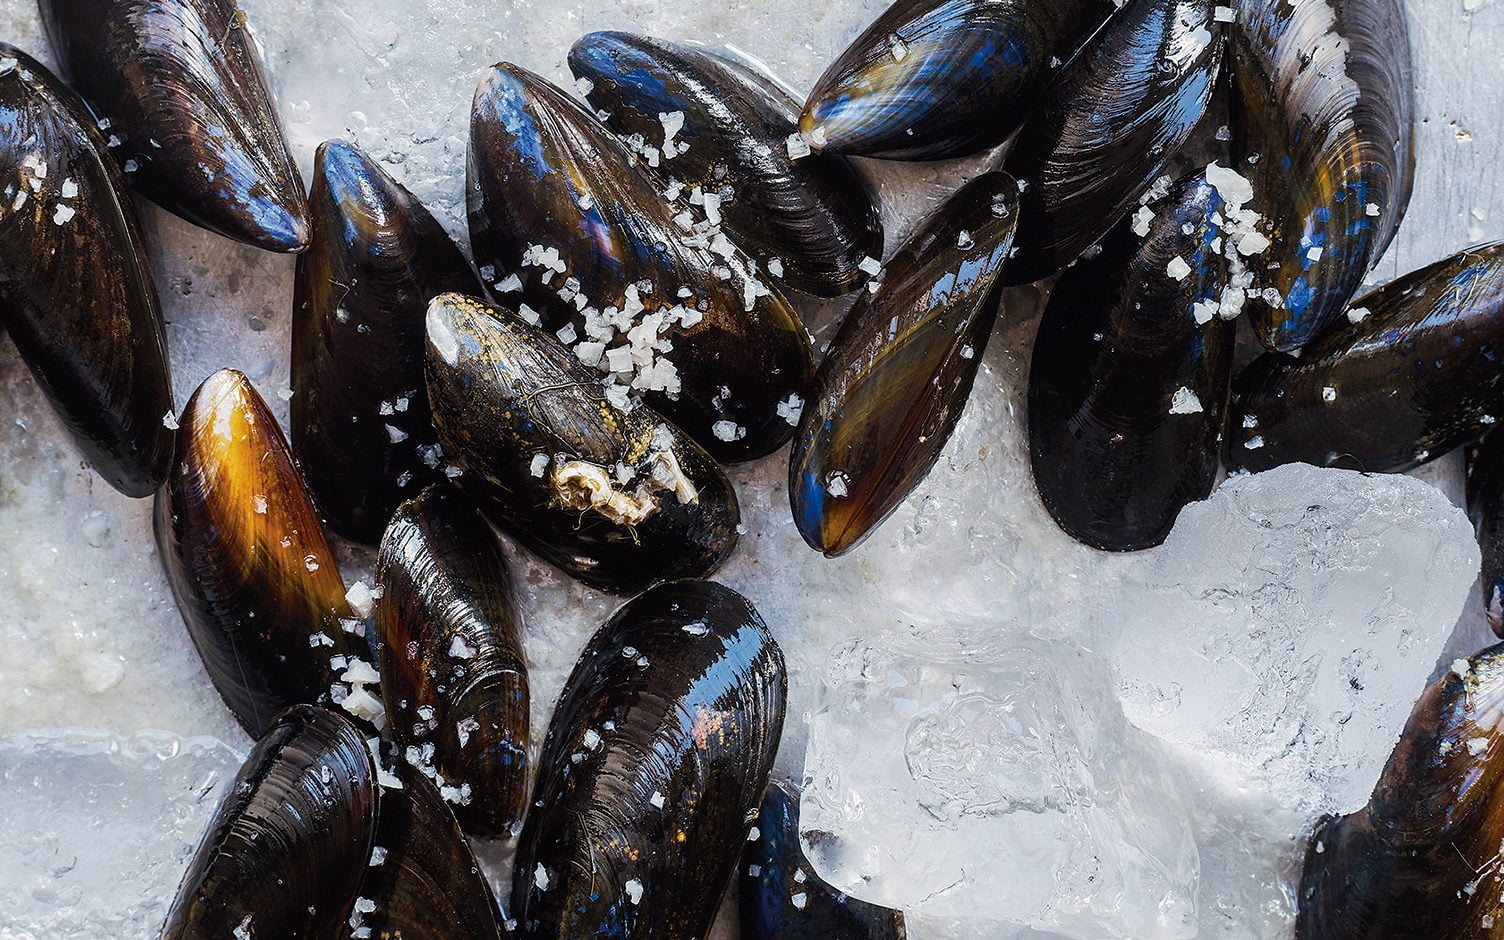 Traces of opioids found in mussels in Puget Sound near Seattle